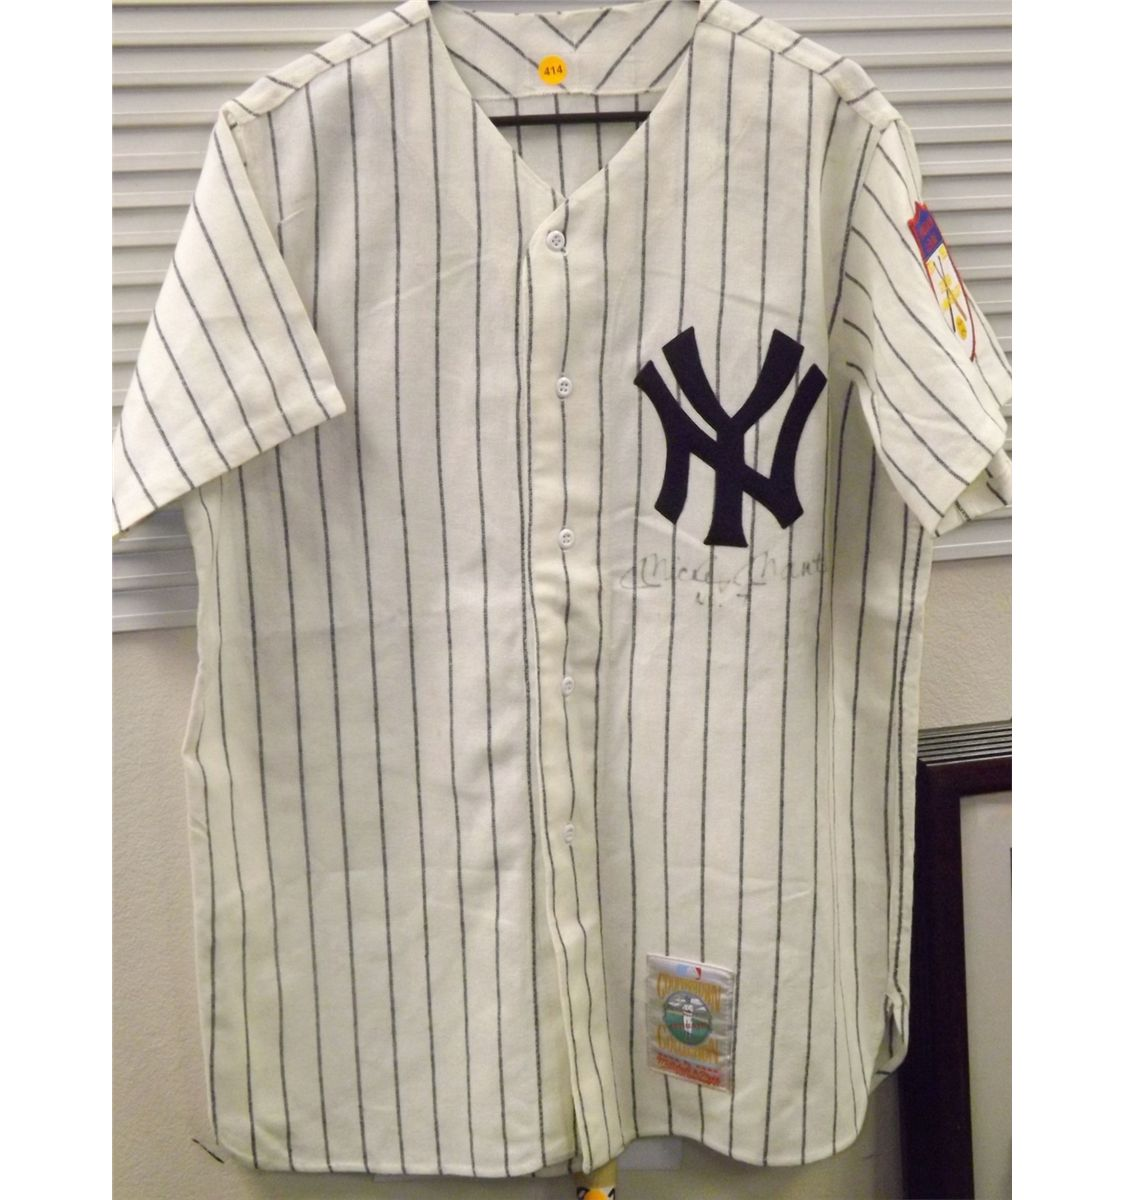 outlet store 6a8d2 fb3dd Mickey Mantle Autographed Jersey. NY Yankees Striped Mitchell and Ness  Cooperstown Collection Loose